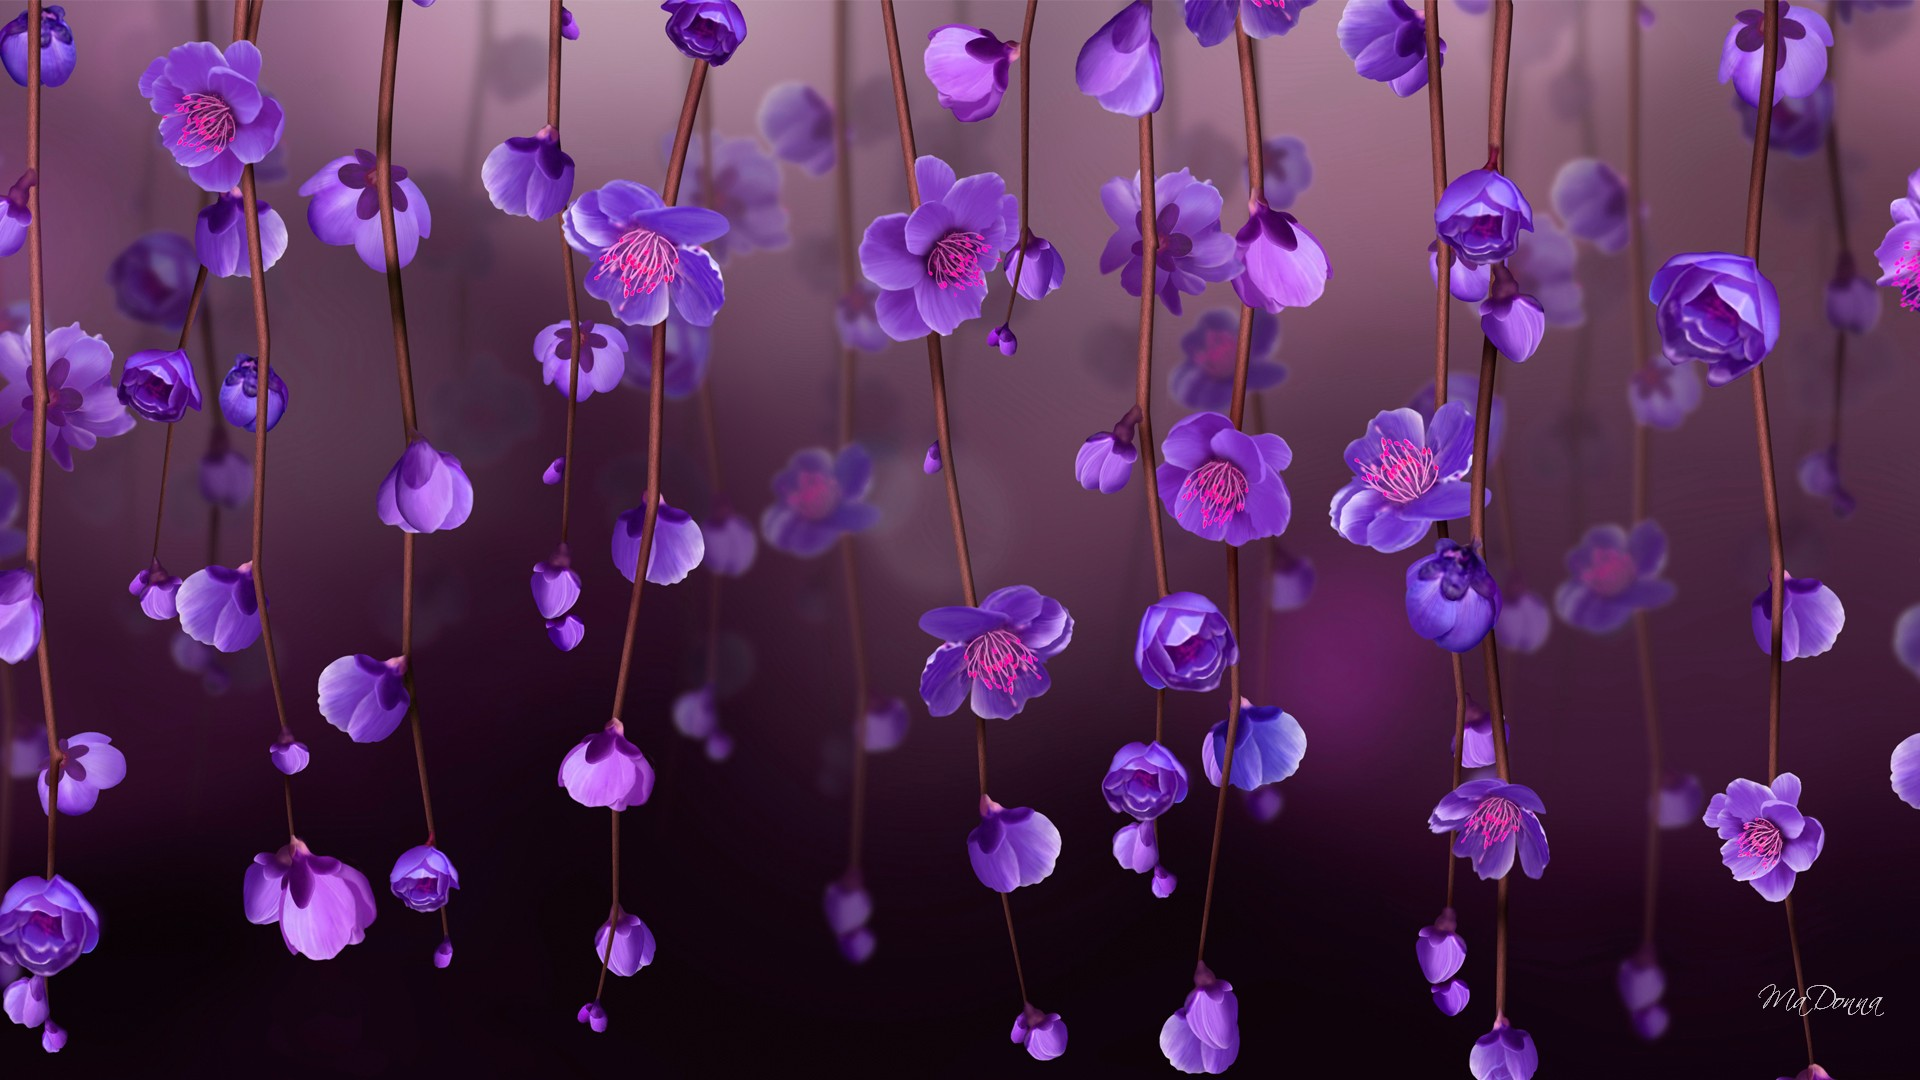 Purple Blossoms Full HD Wallpaper And Background Image